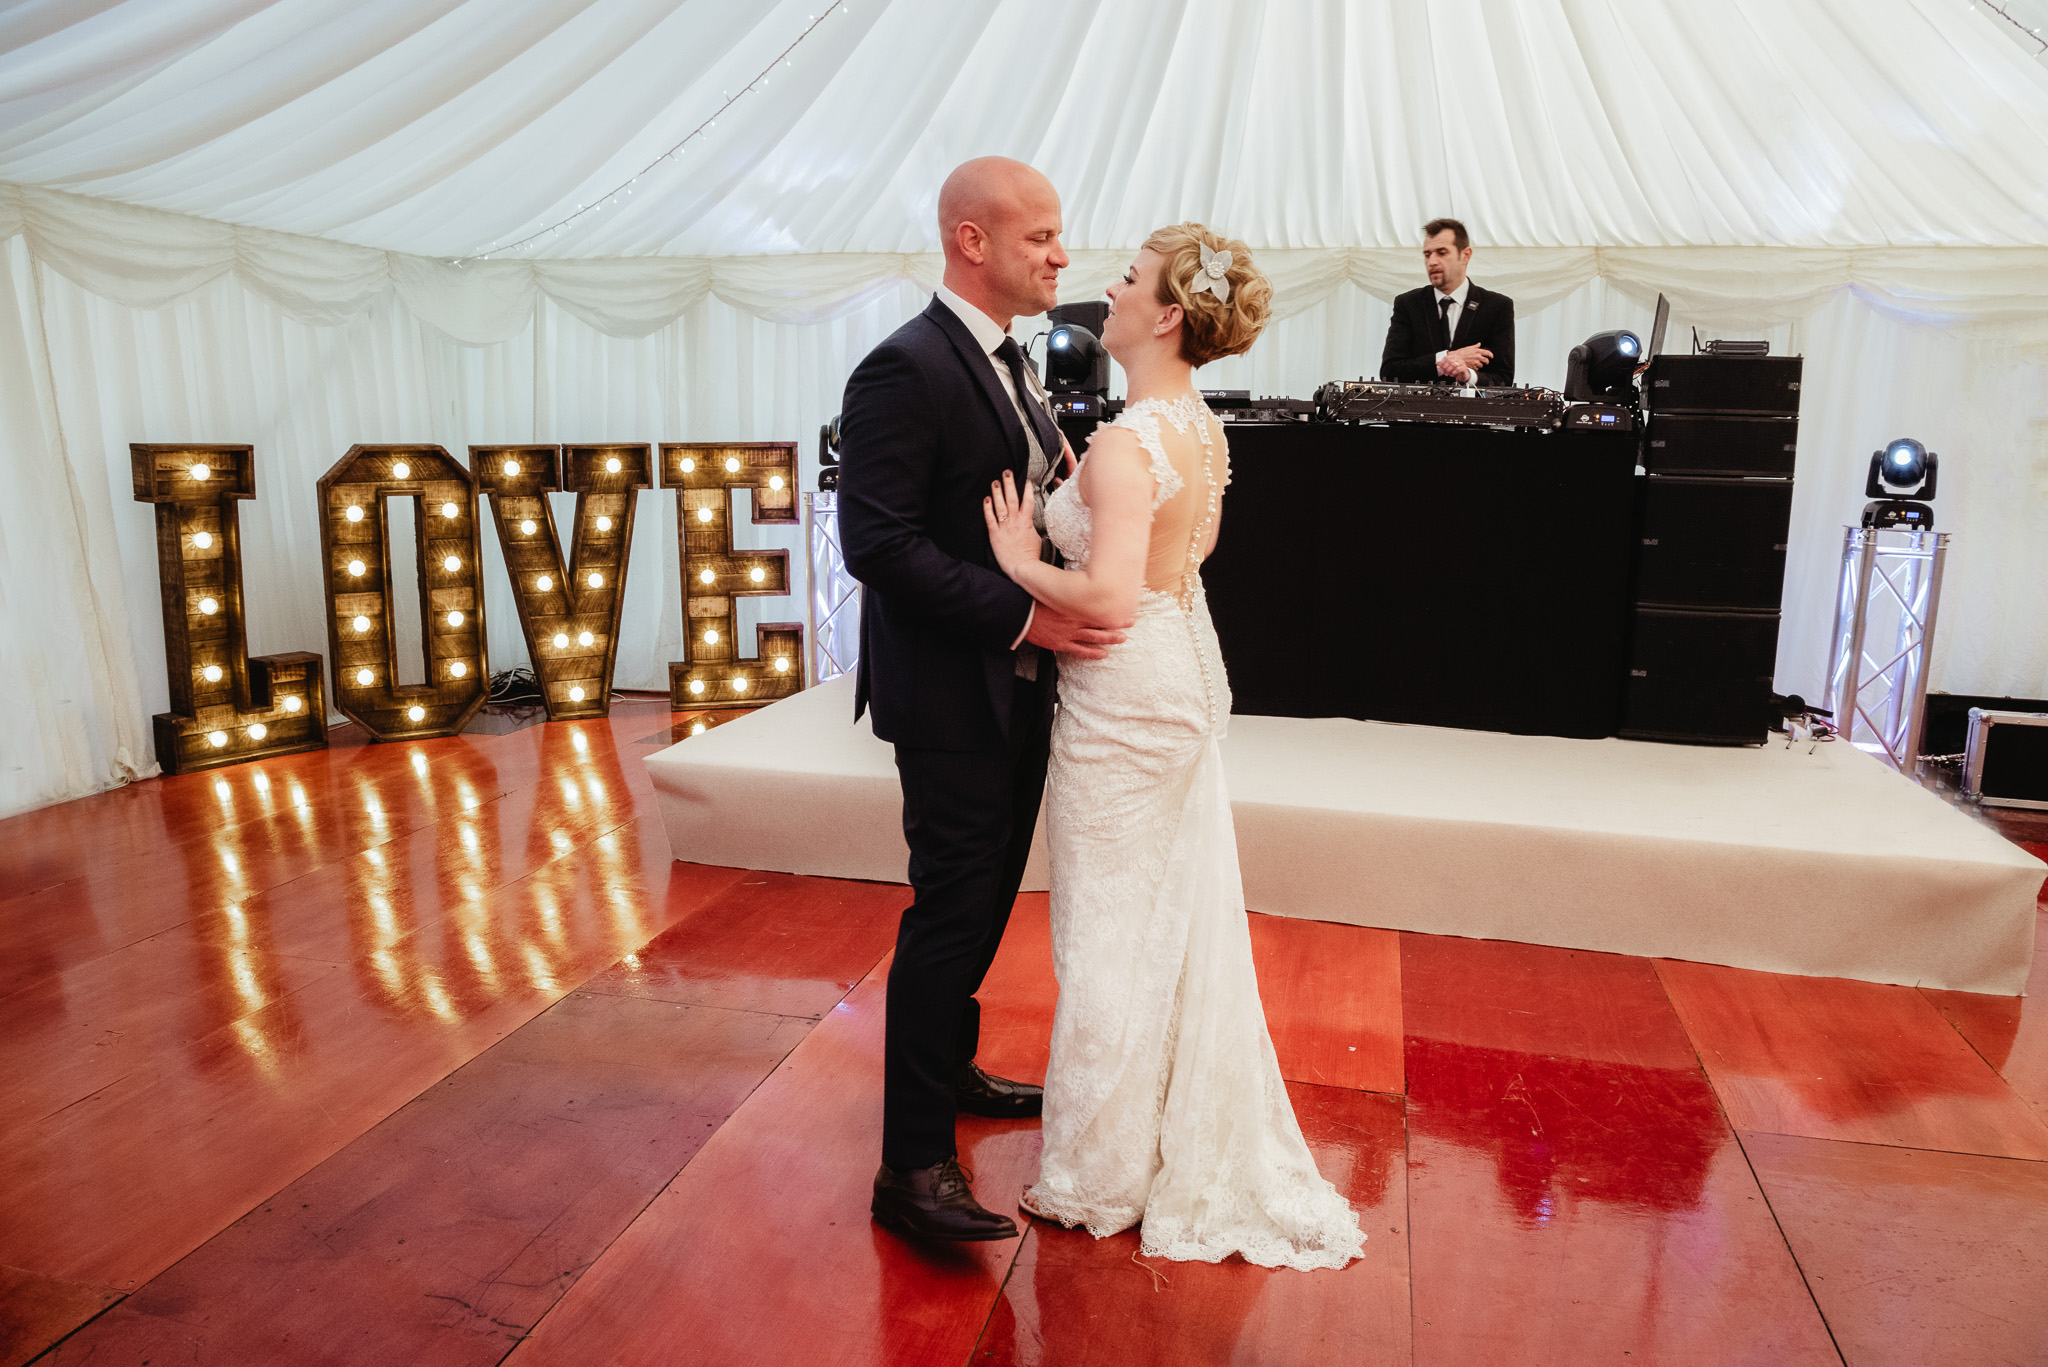 bride and groom starting first dance with love sign in background